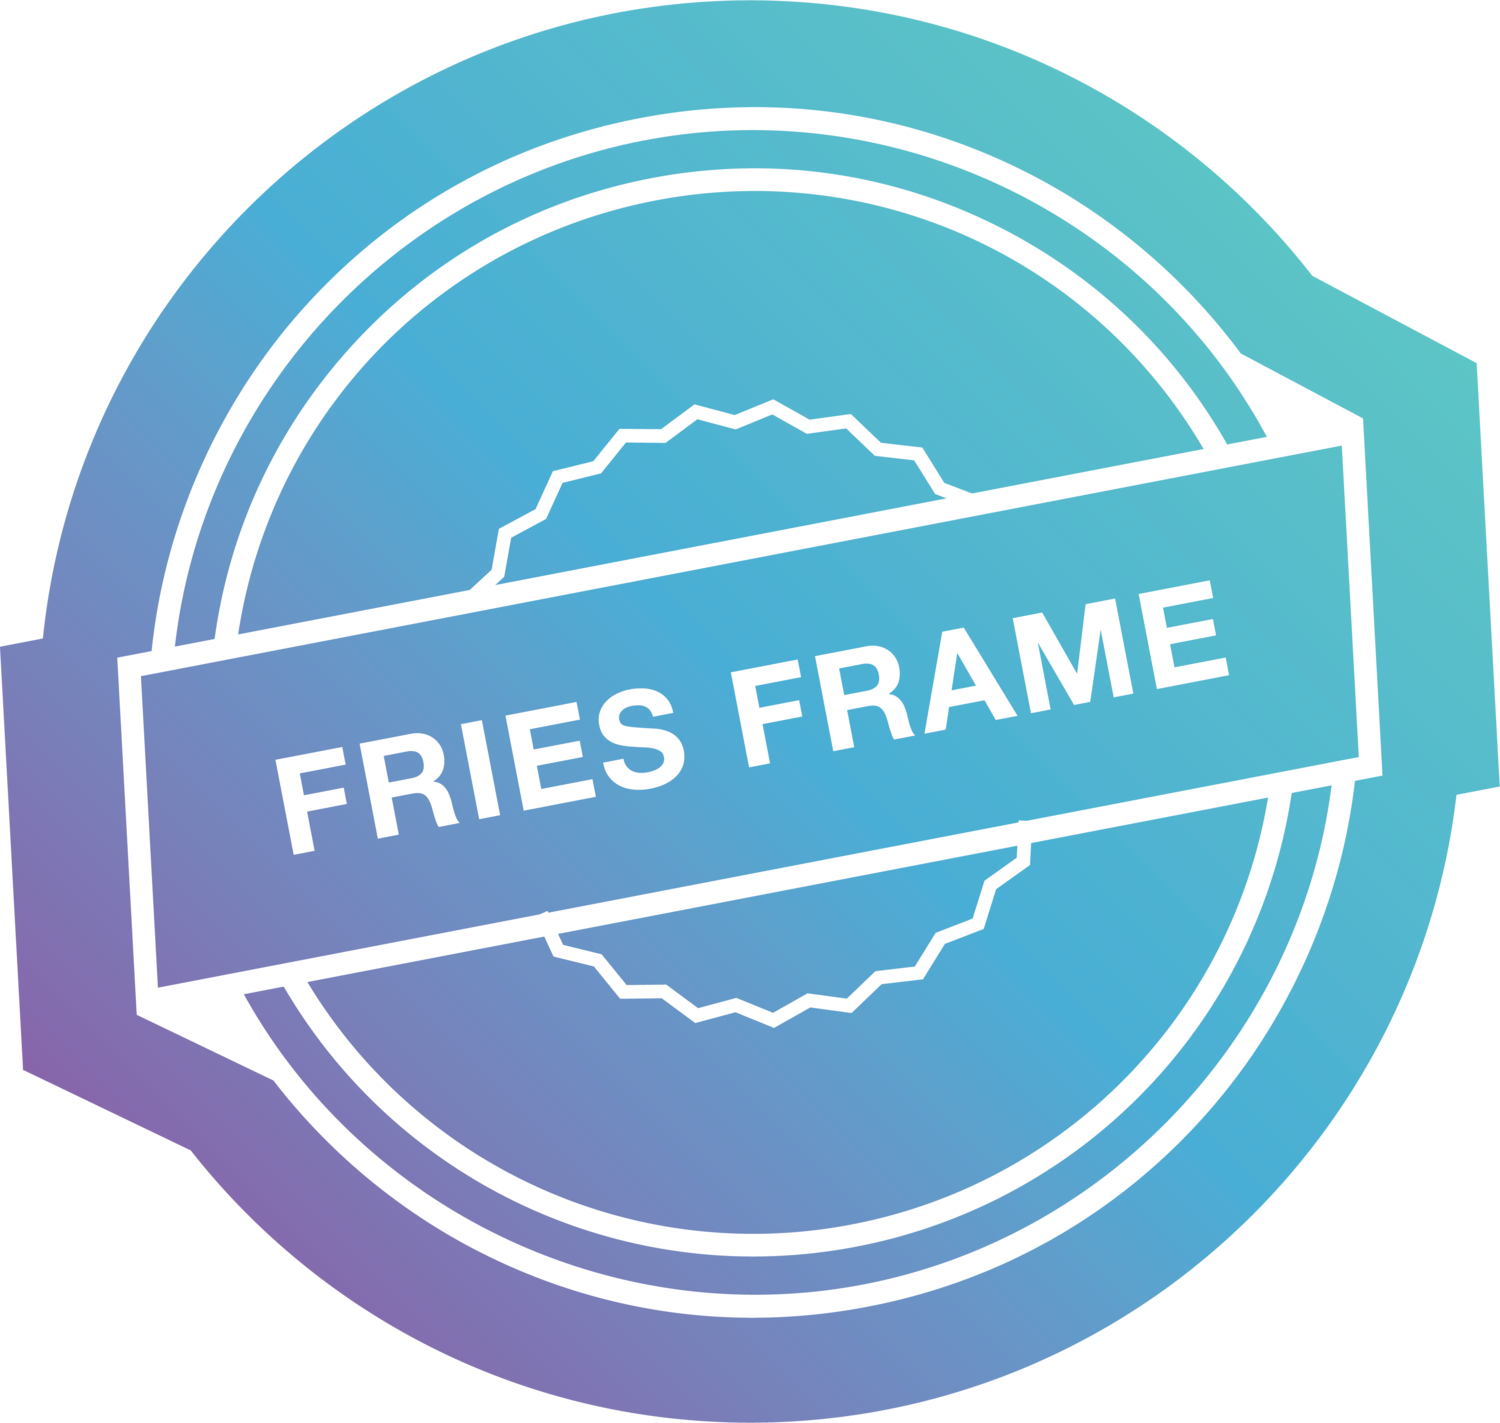 Fries Frame Design